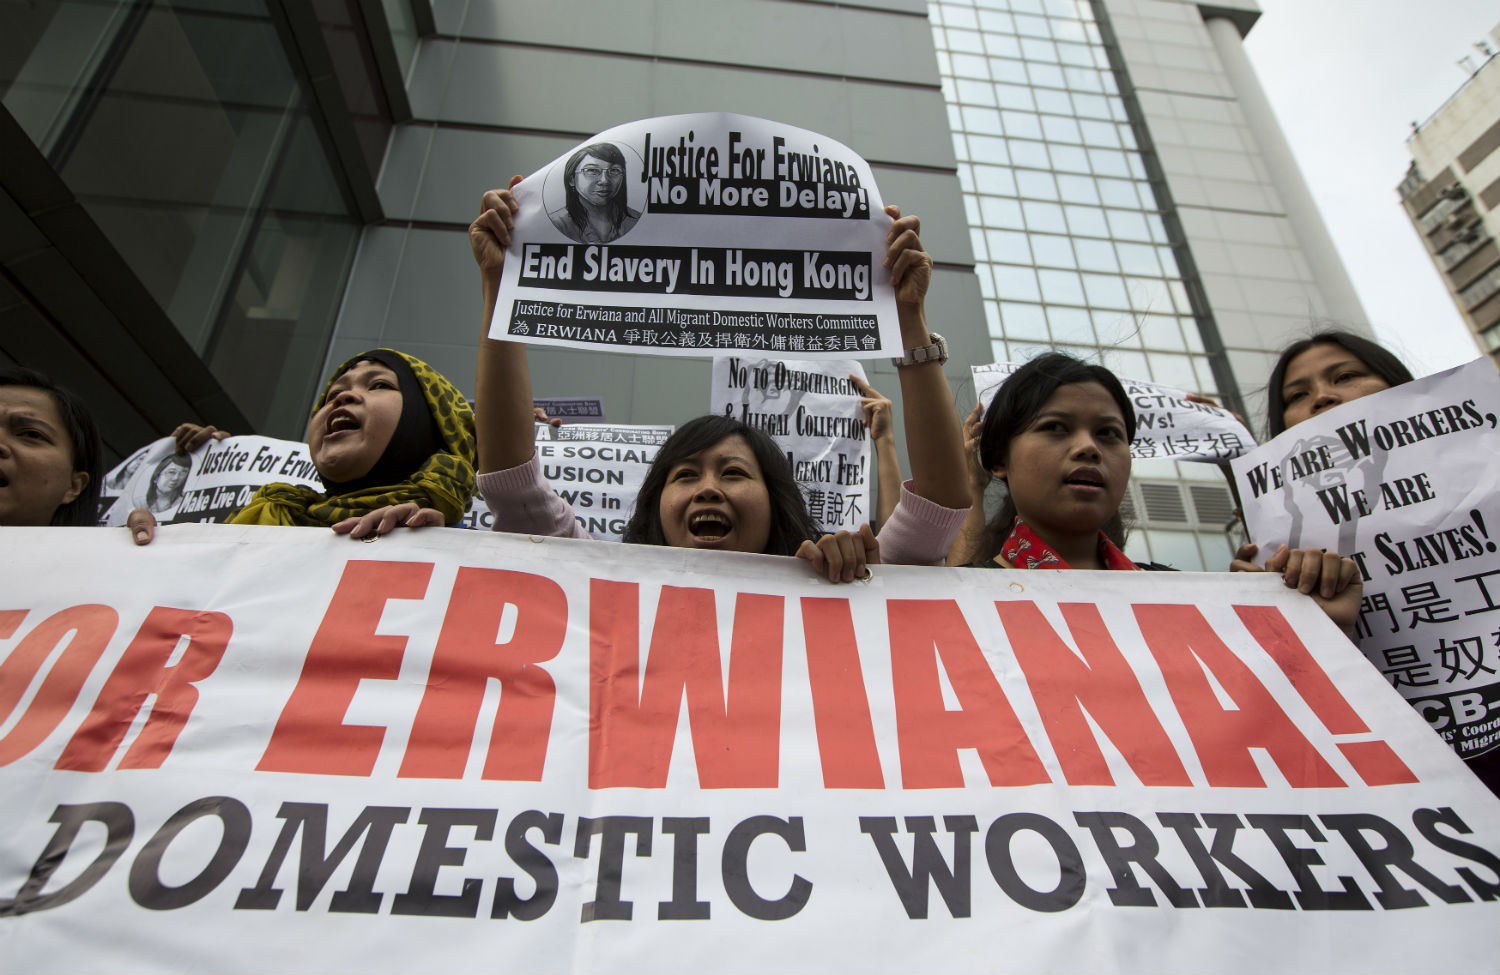 Protestors-call-for-better-protection-of-migrant-domestic-workers